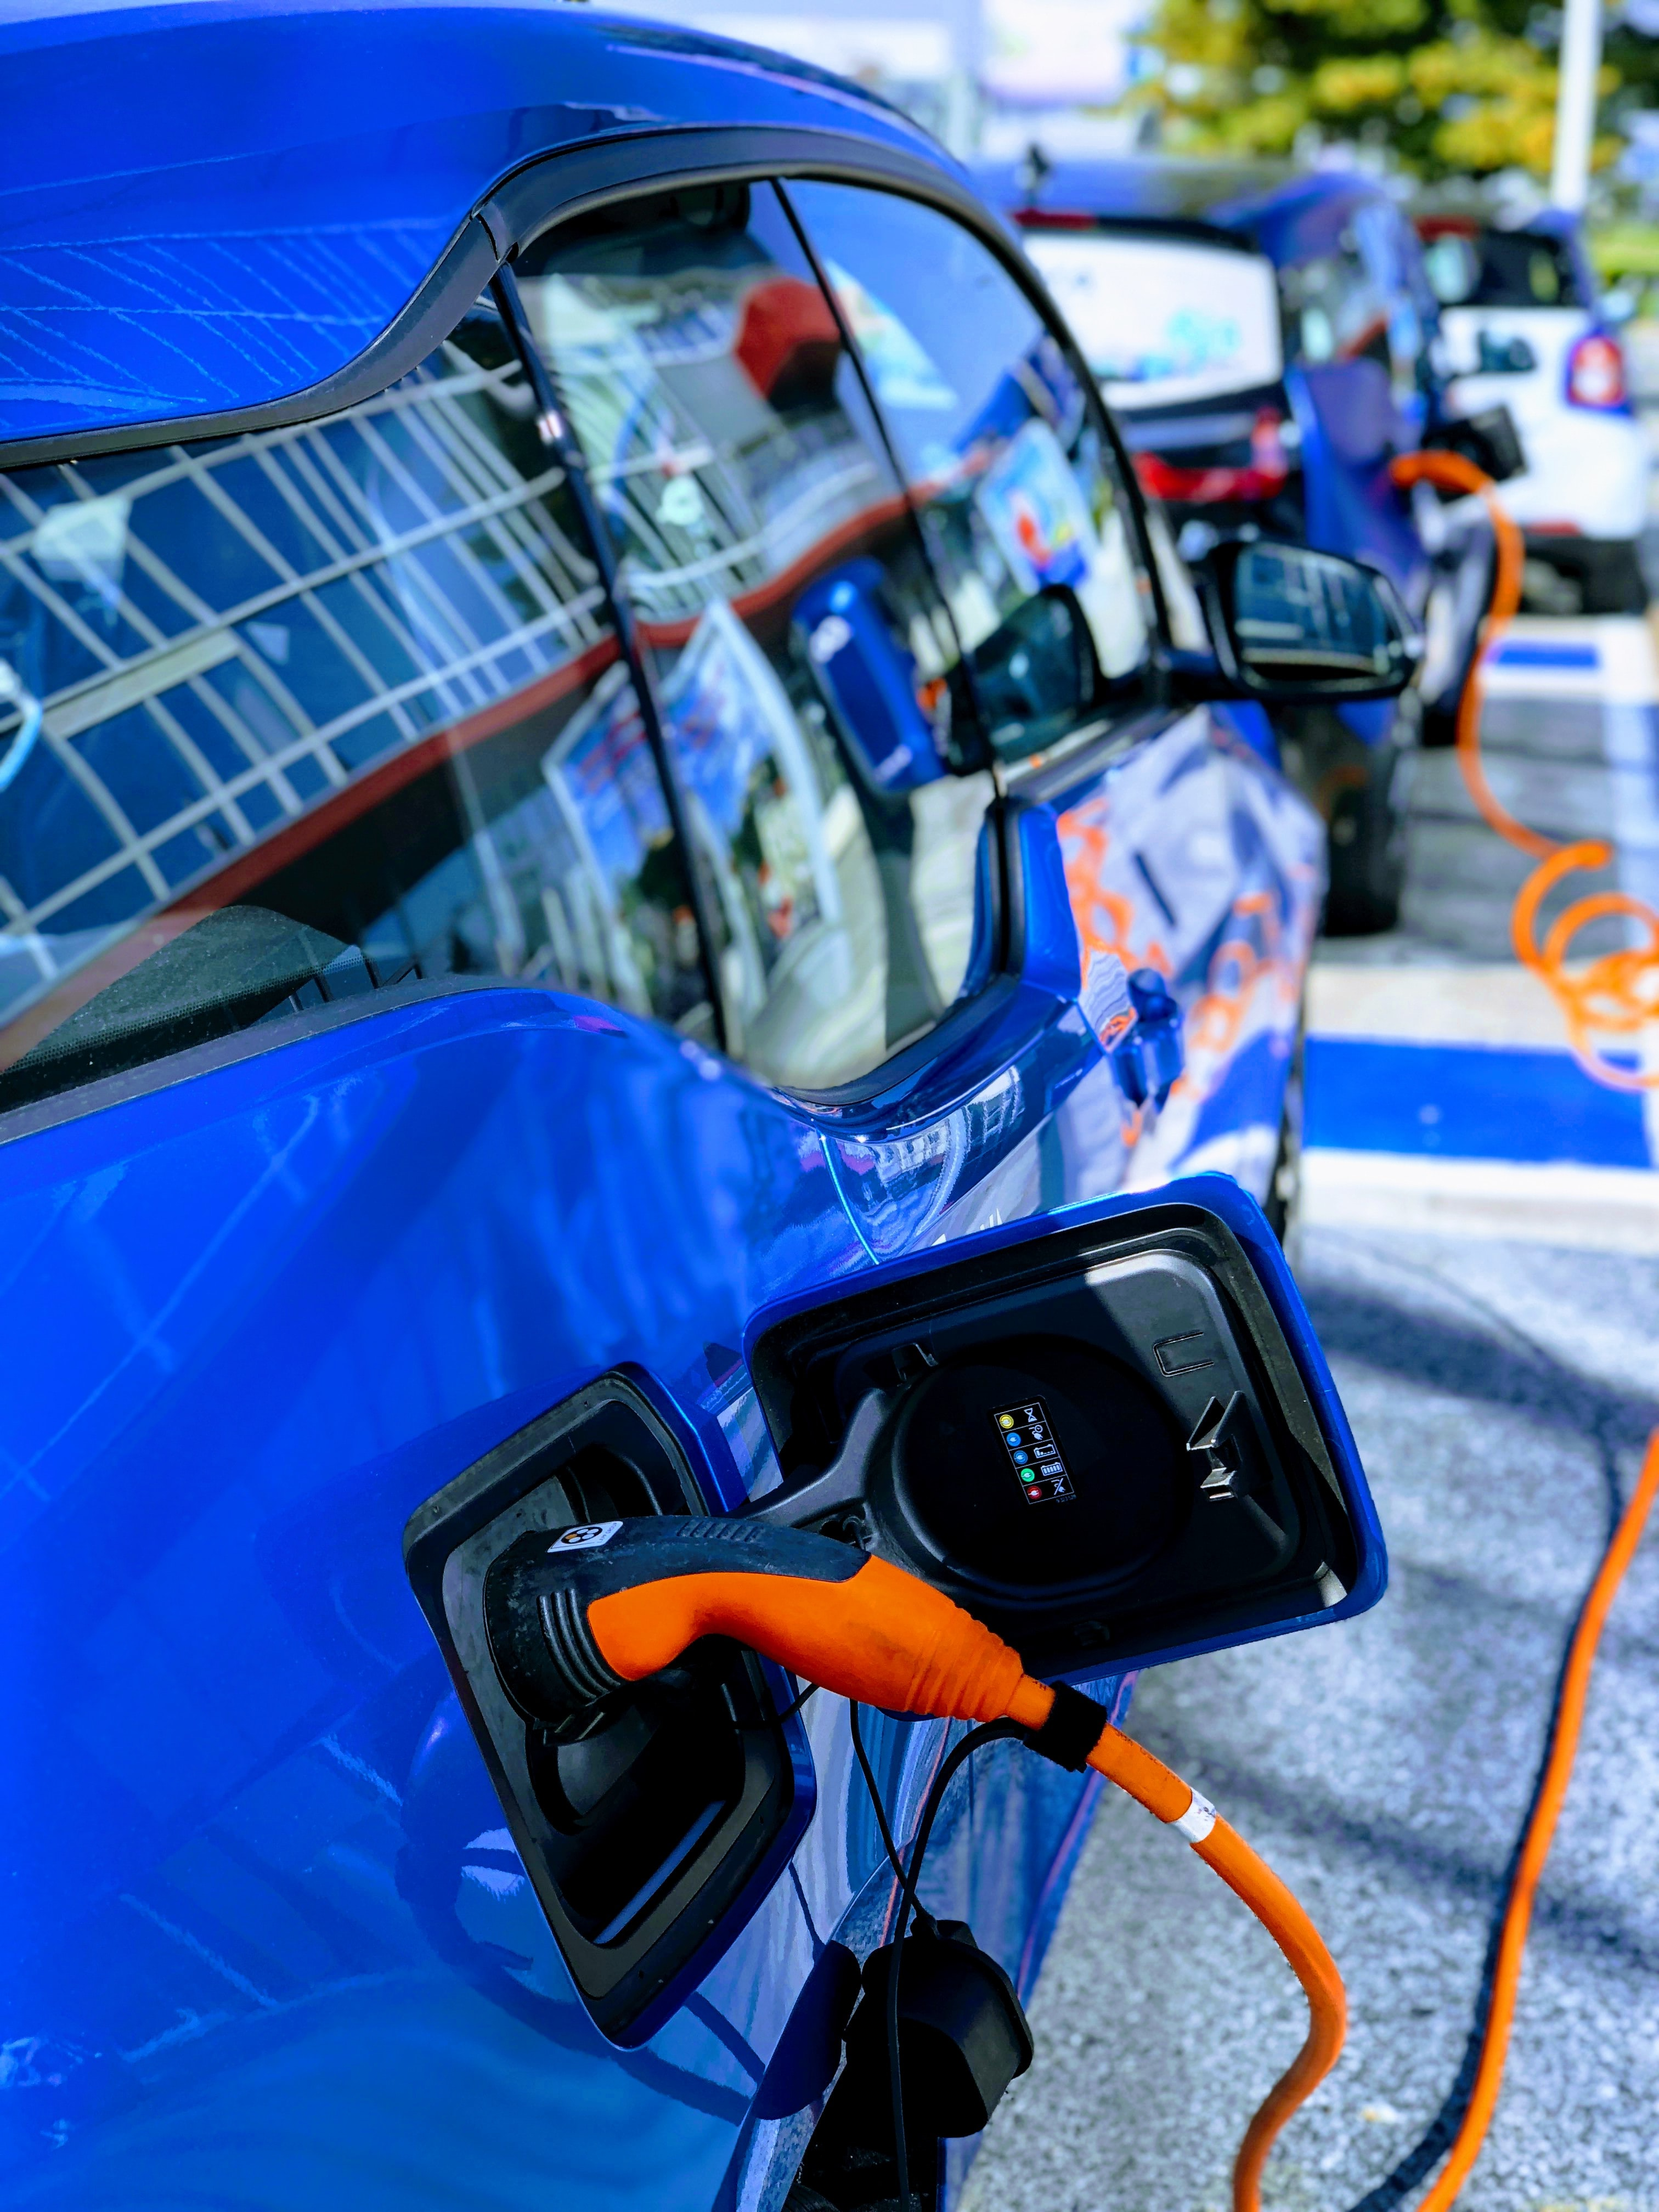 Electric Vehicles - what's it all about, anyway?